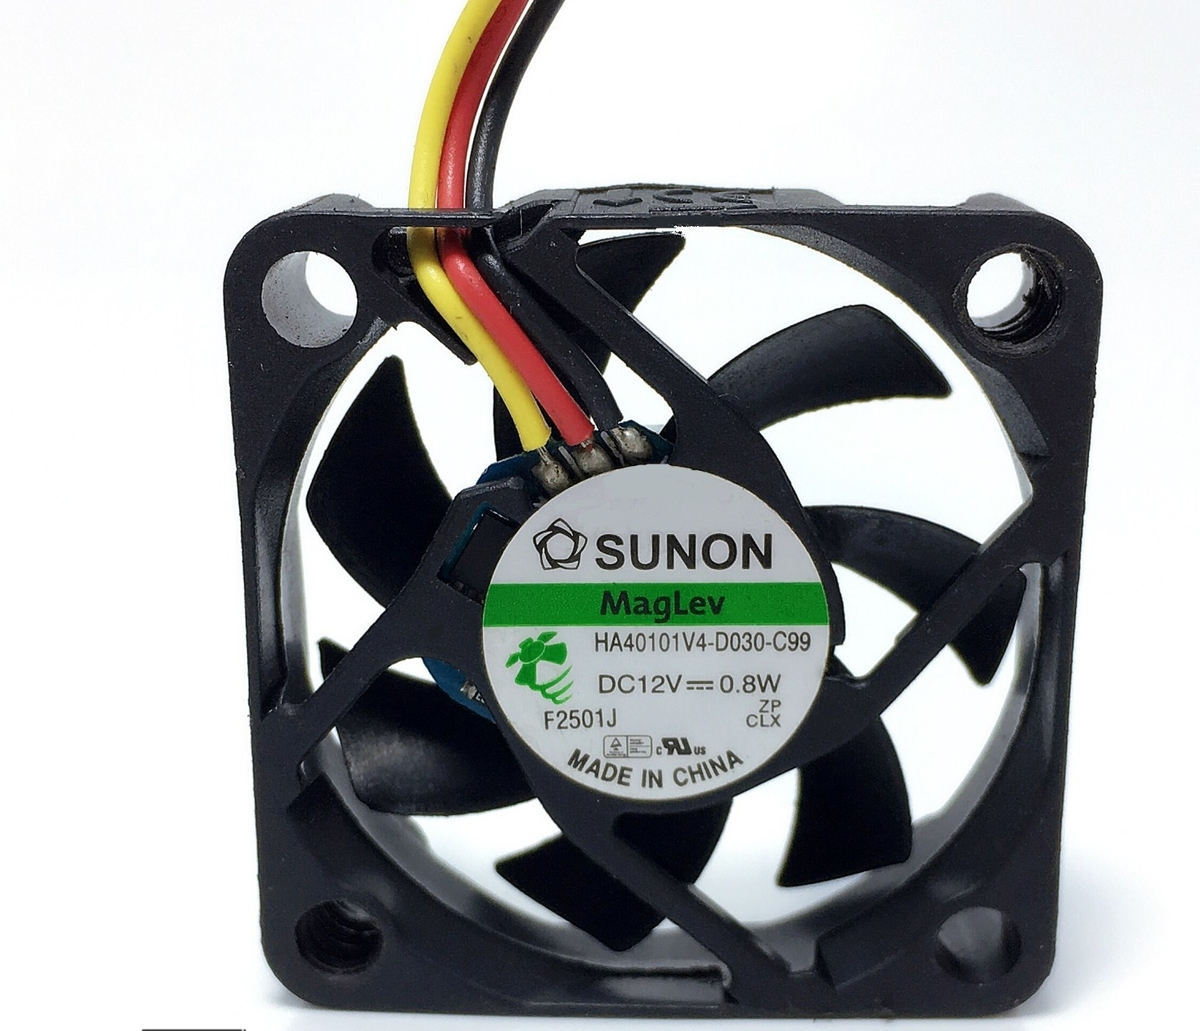 Wholesale: SUNON HA40101V4-D030-C99 4010 40x40x10mm 4cm 0.8W 3-line Projector Silent Cooling Fan